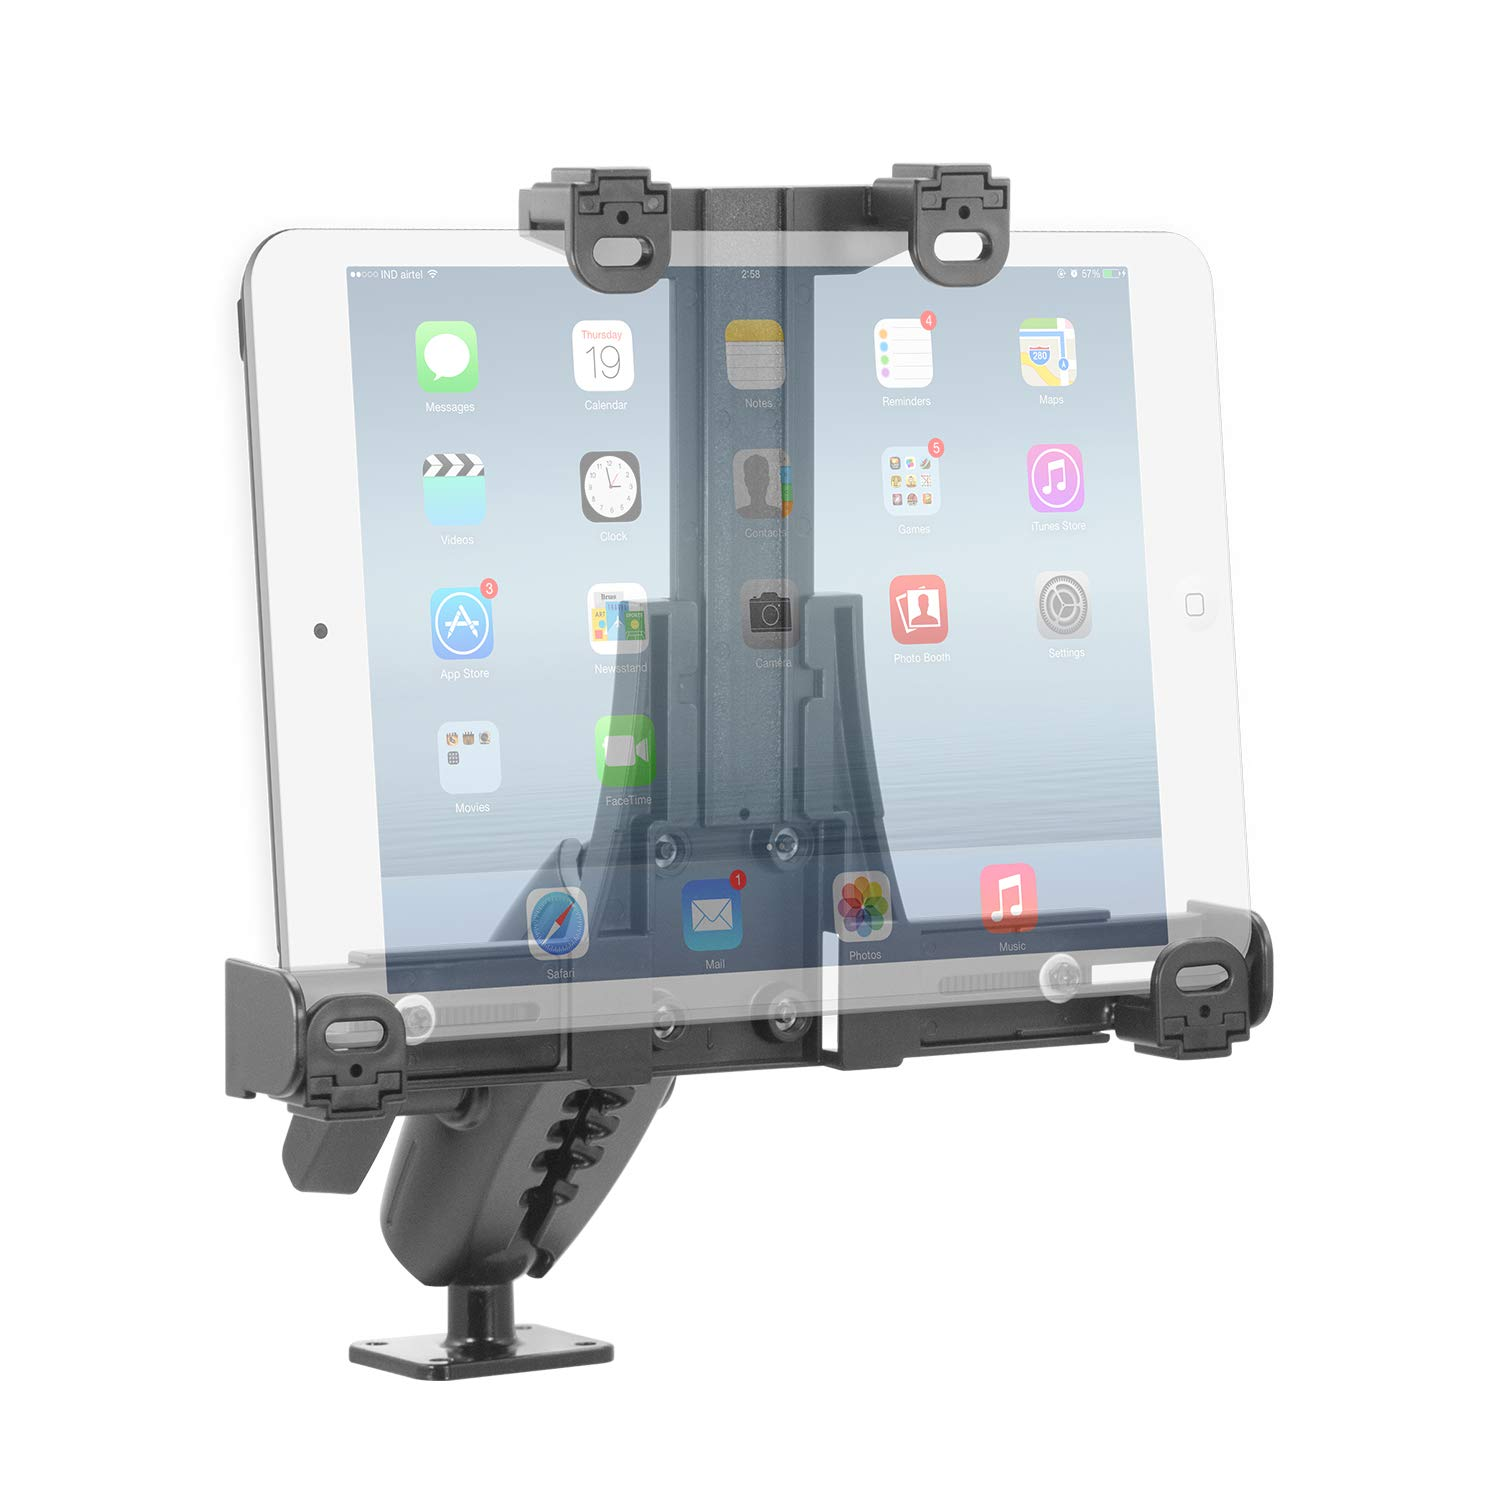 iBOLT TabDock Lock'n Dock 38mm (1.5 inch) Bizmount- Heavy Duty Industrial Metal Locking Drill Base Mount for All 7'' - 10'' Tablets- for Commercial Use Trucks/Vehicles : Great for Telematics and Fleets by iBOLT.co